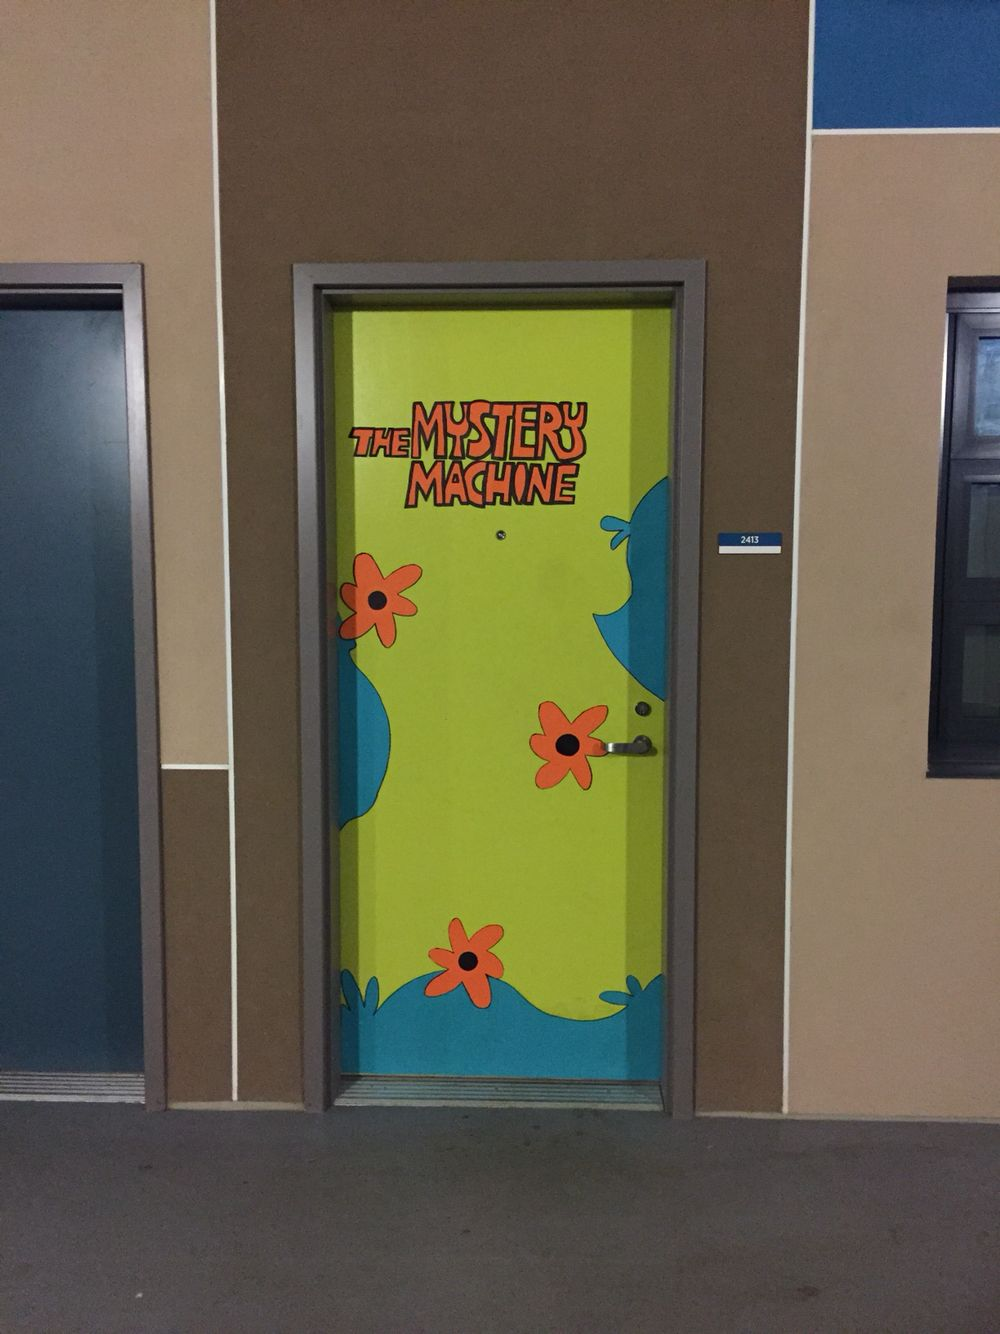 Halloween dorm door decorations - Halloween College Dorm Door Decorations The Mystery Machine Scooby Doo